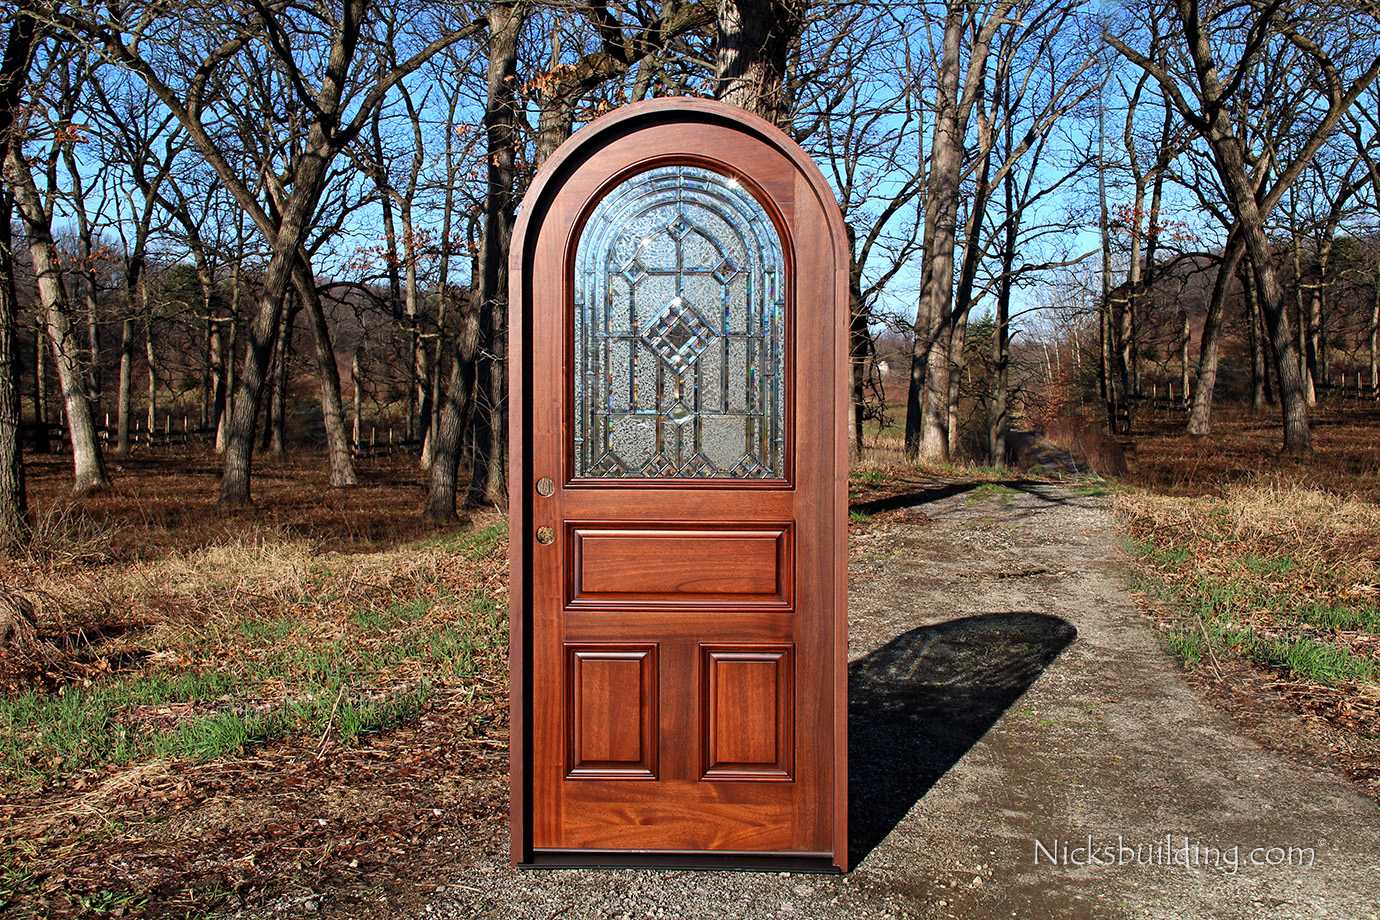 920 #2578A6 Panel Round Top Mahogany Wood Entry Door With Glass picture/photo Arched Doors With Glass 42191380